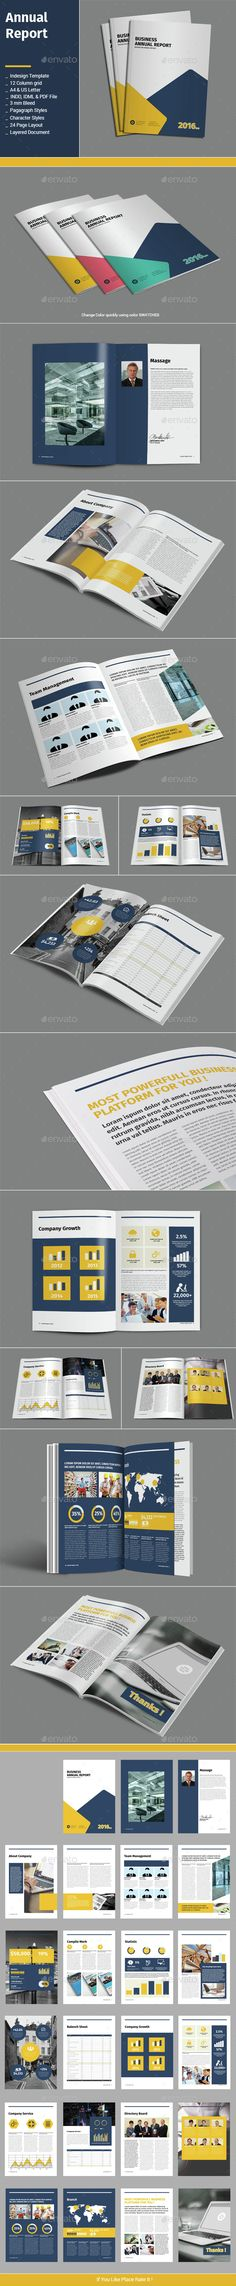 Annual Report Square Template 2 Annual reports, Template and Squares - annual report template design